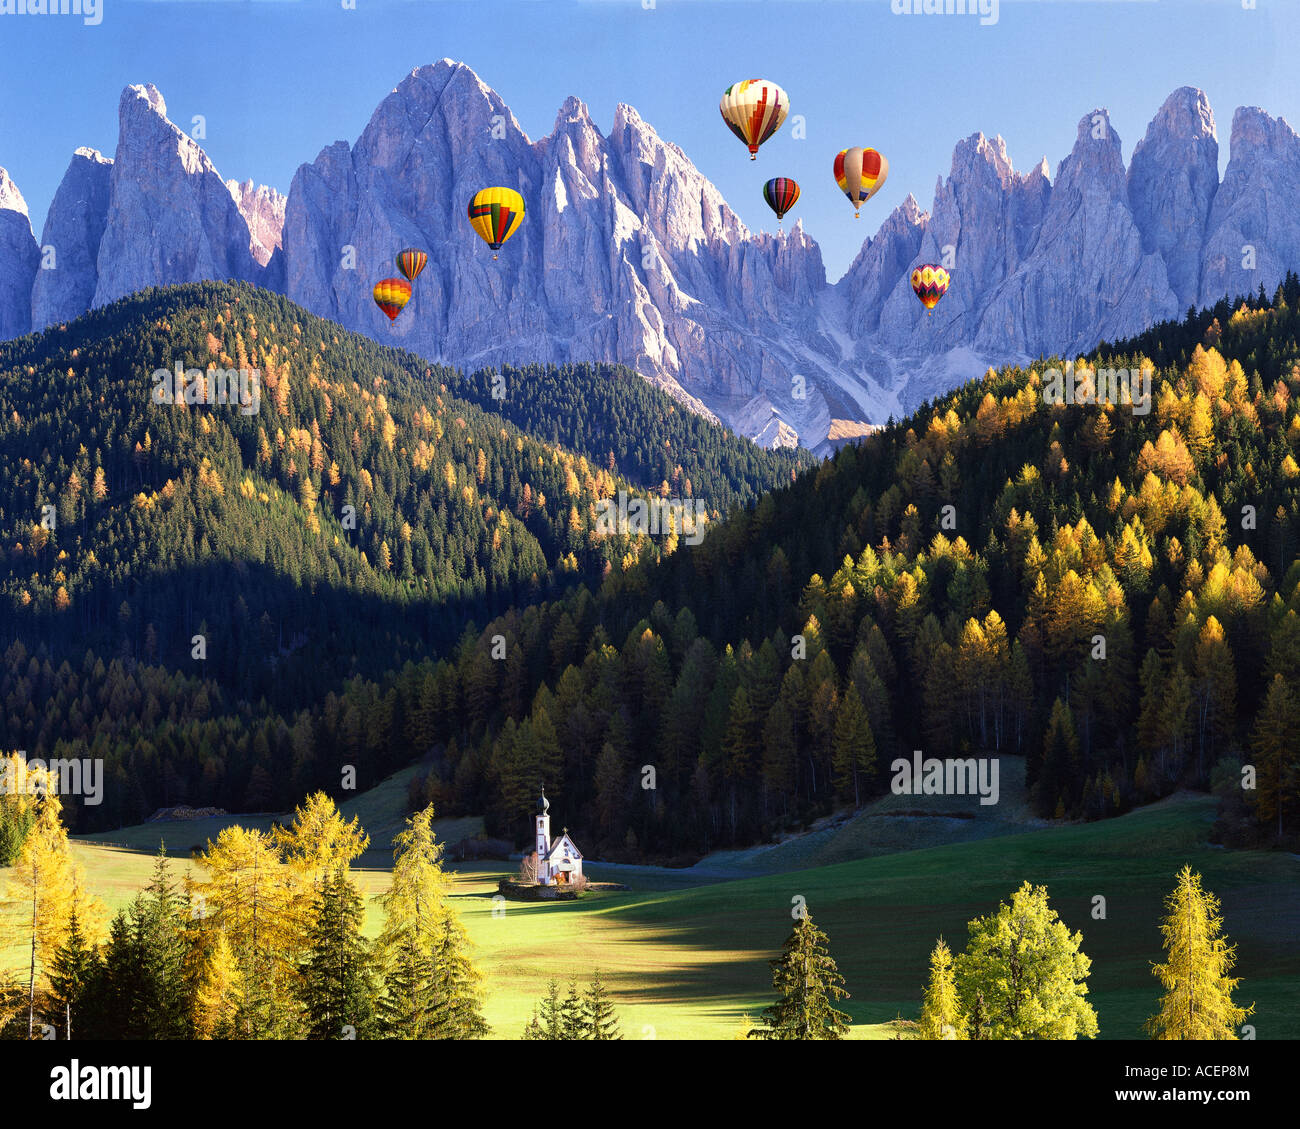 IT - DOLOMITES:  St. Johann in Ranui and Geisler Spitzen Mountains - Stock Image